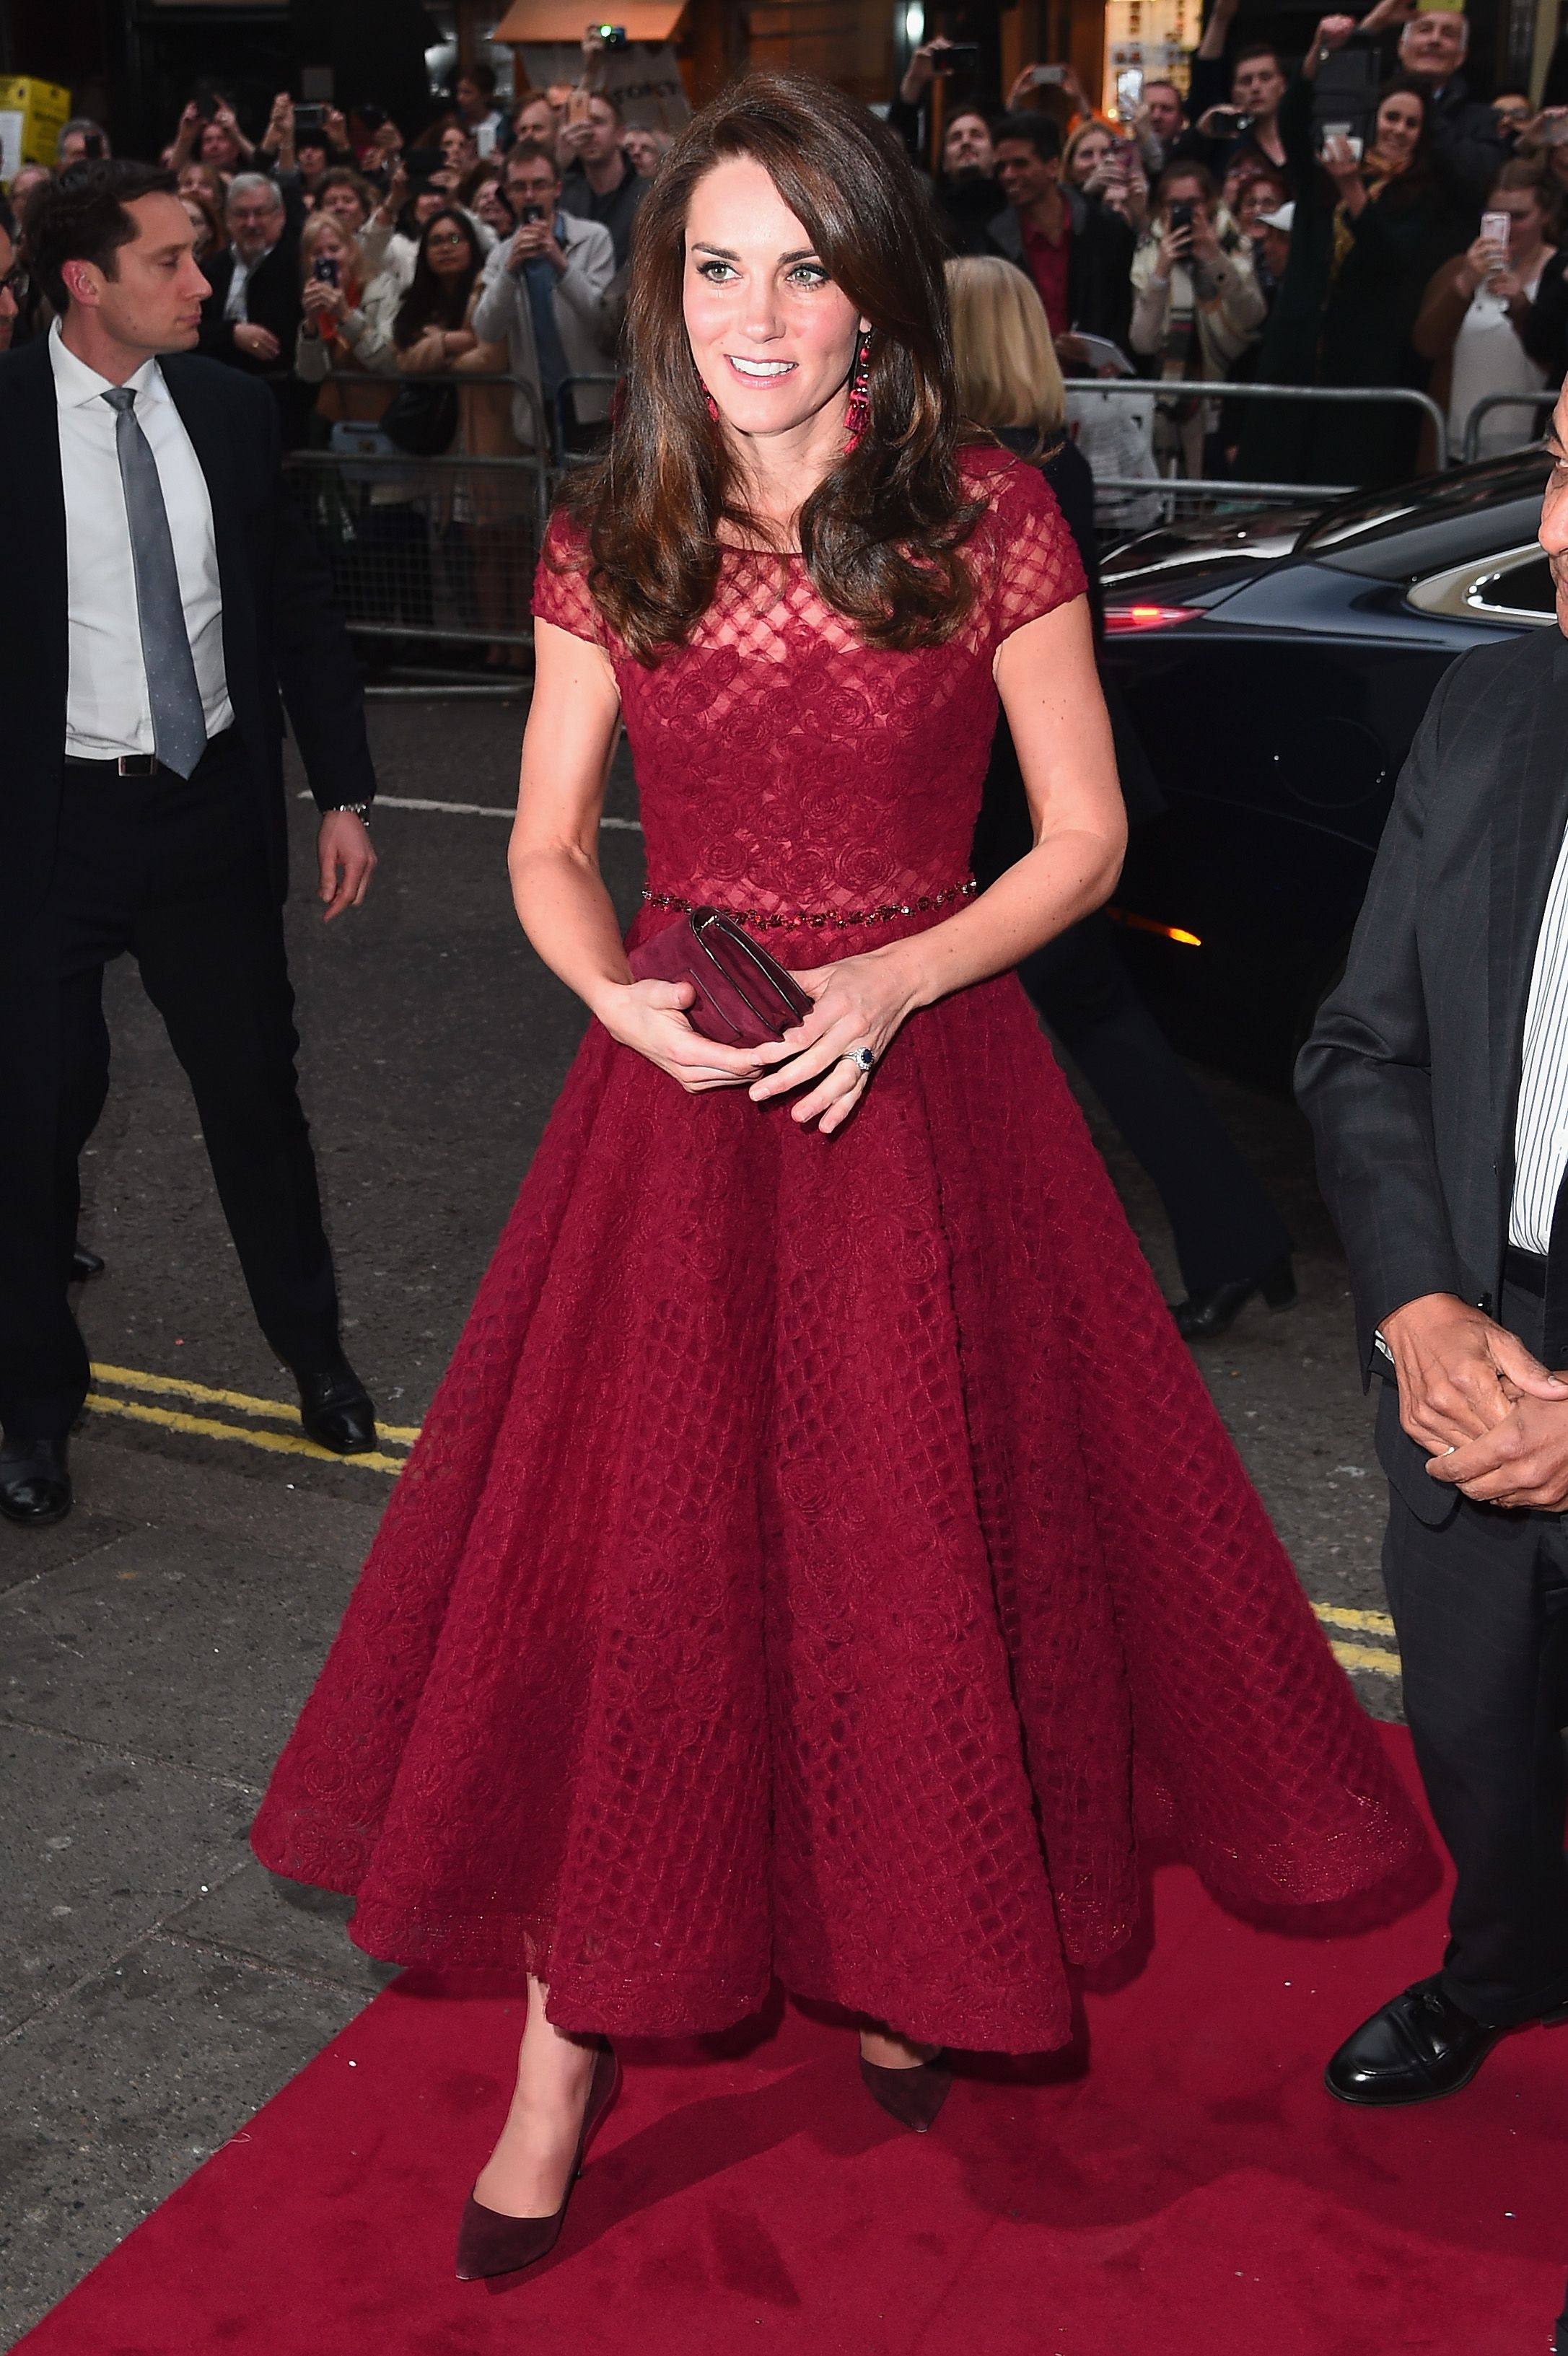 eaa83fa26804 Kate Middleton Best Fashion and Style Moments - Kate Middleton s Favorite  Outfits